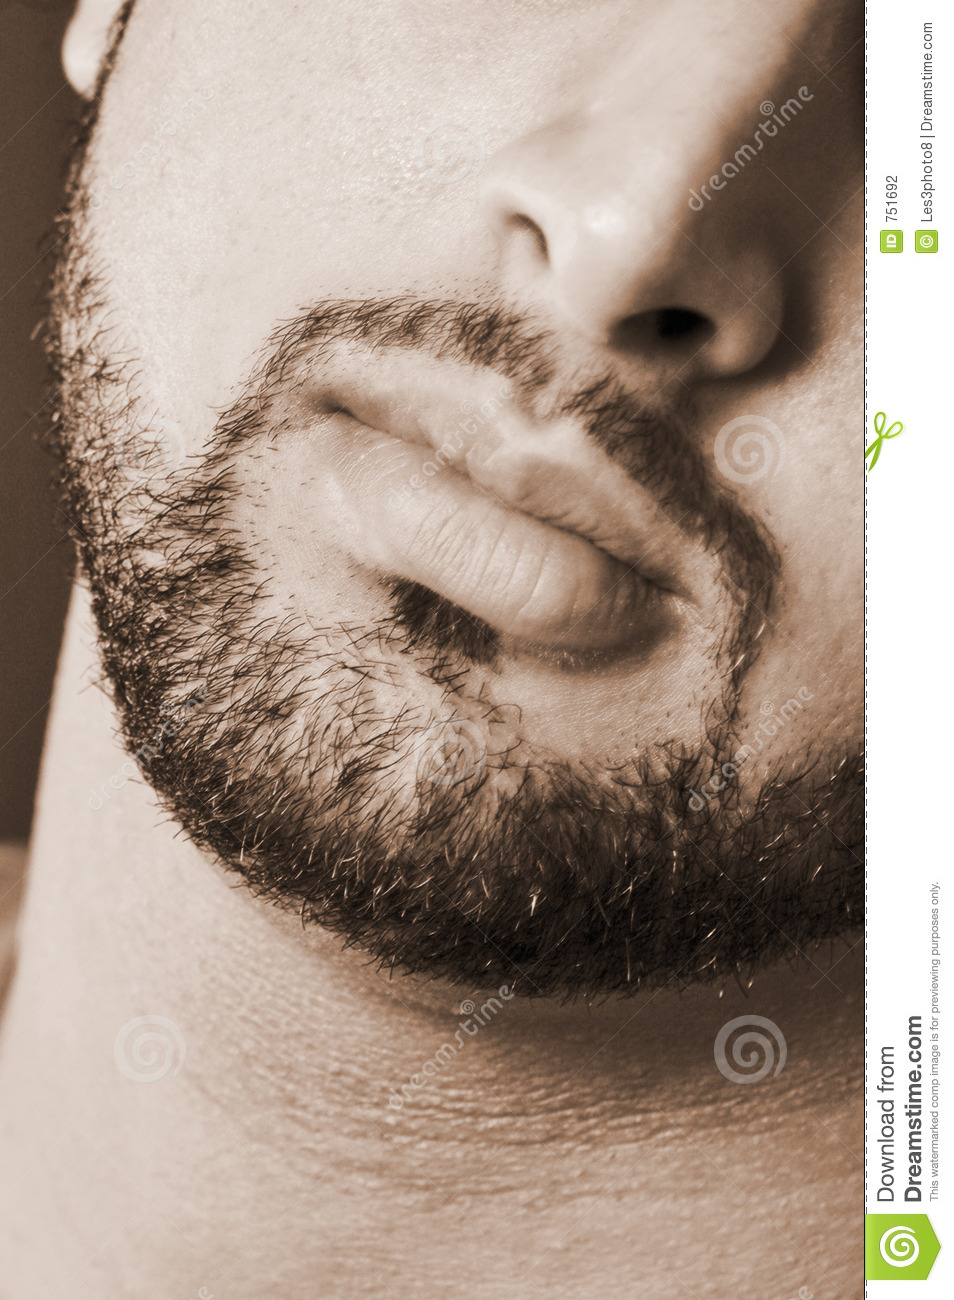 Burly Male Beard Stock Photography Image 751692